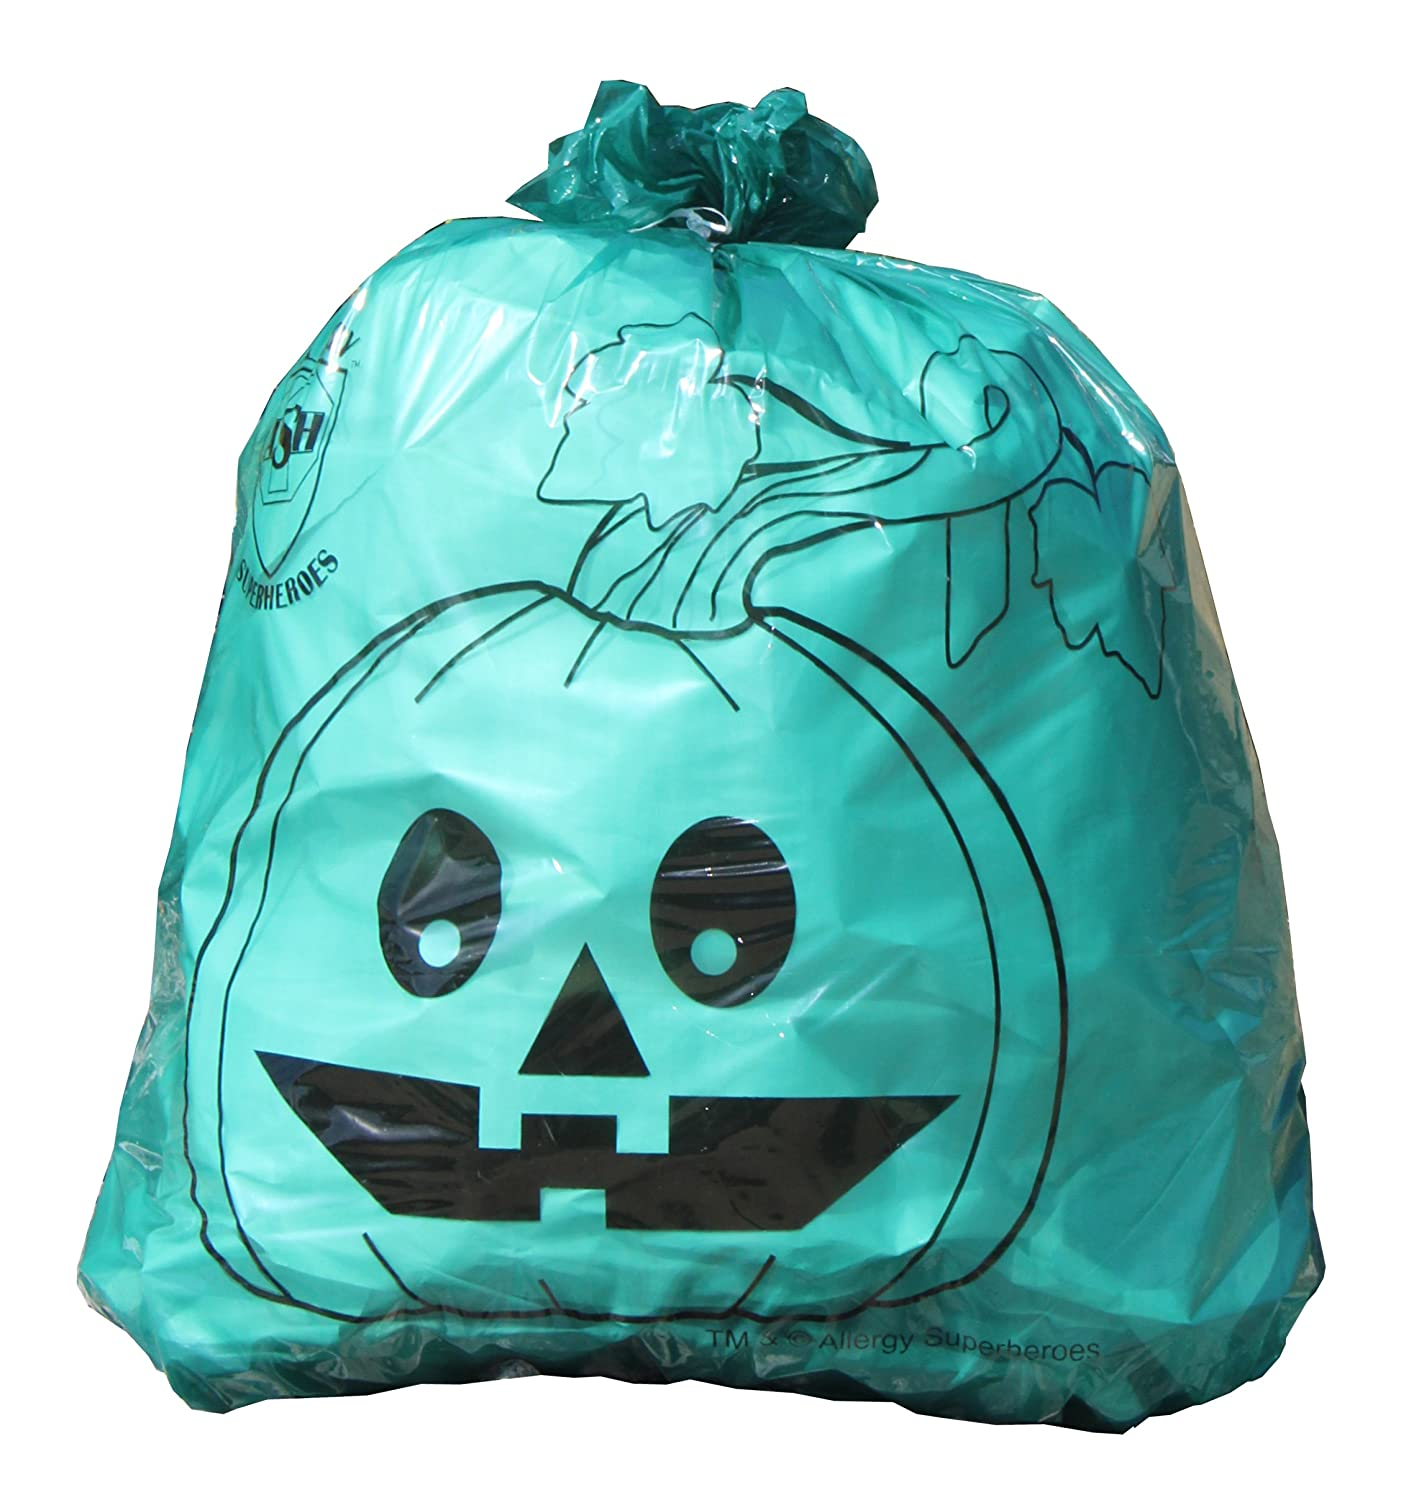 Teal Pumpkin Leaf Bags Allergy Superheroes